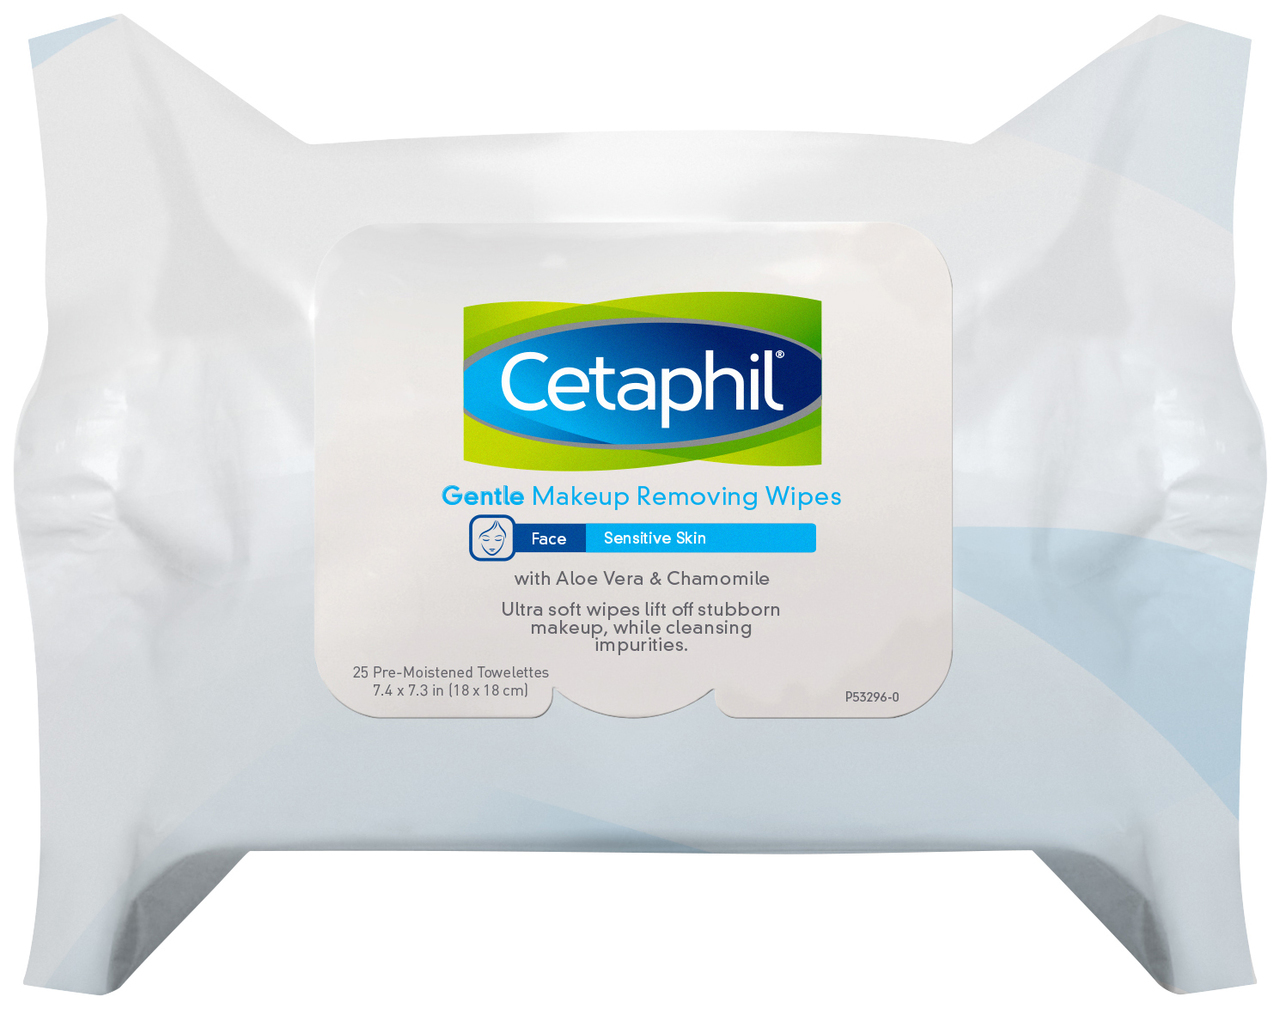 Cetaphil gentle makeup removing wipes - Start by removing makeup with Cetaphil wipes.